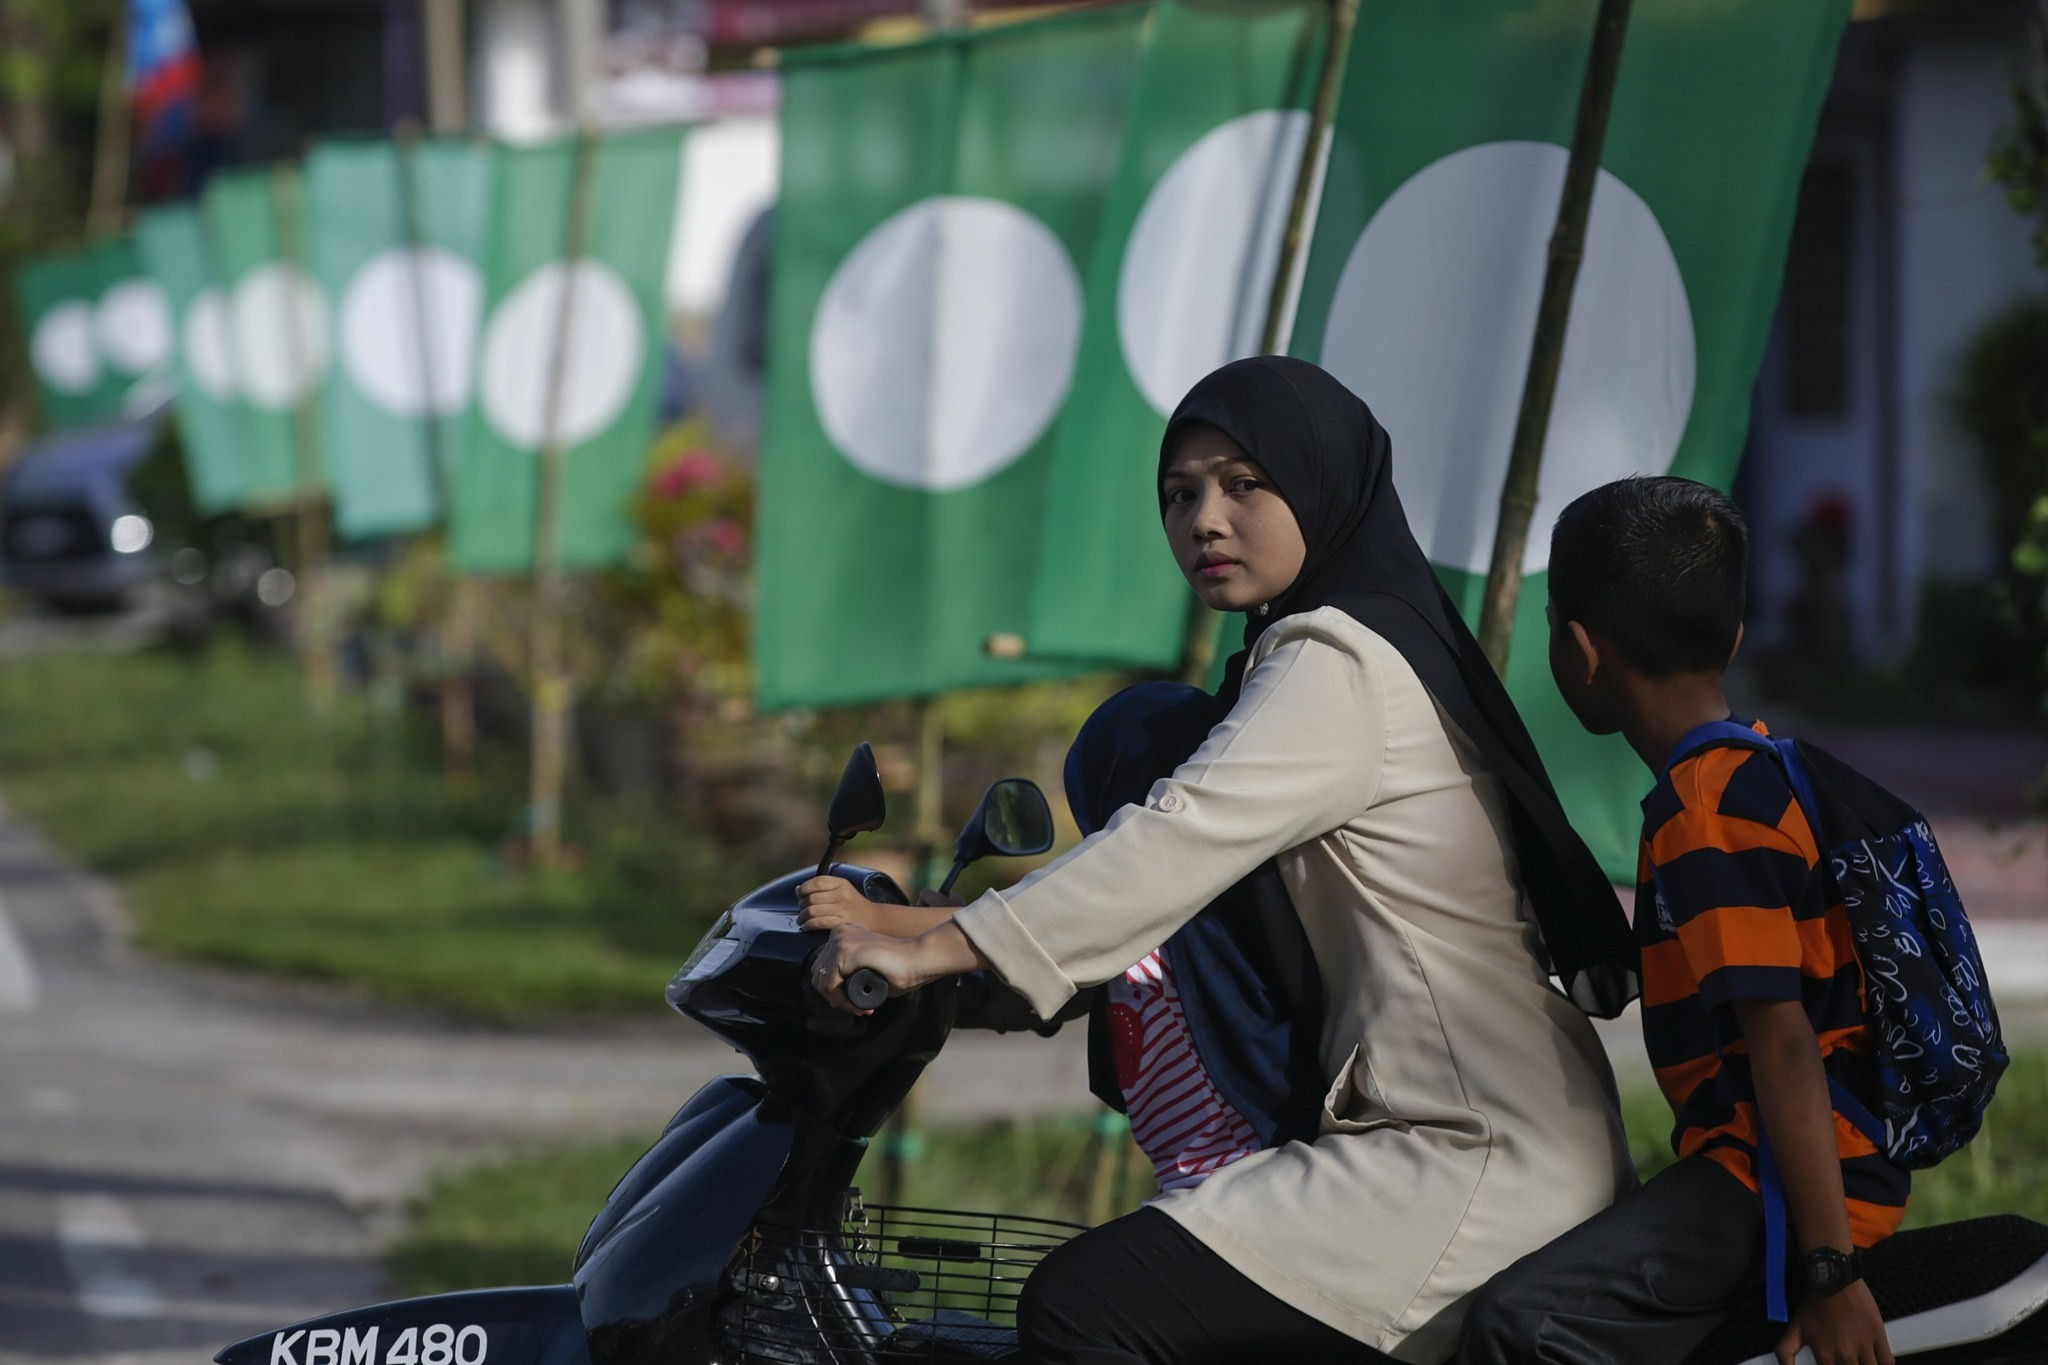 A mother and her son ride a motorcycle in front of Pan Malaysian Islamic Party (PAS) flags on the island of Langkawi, Malaysia, April 27.